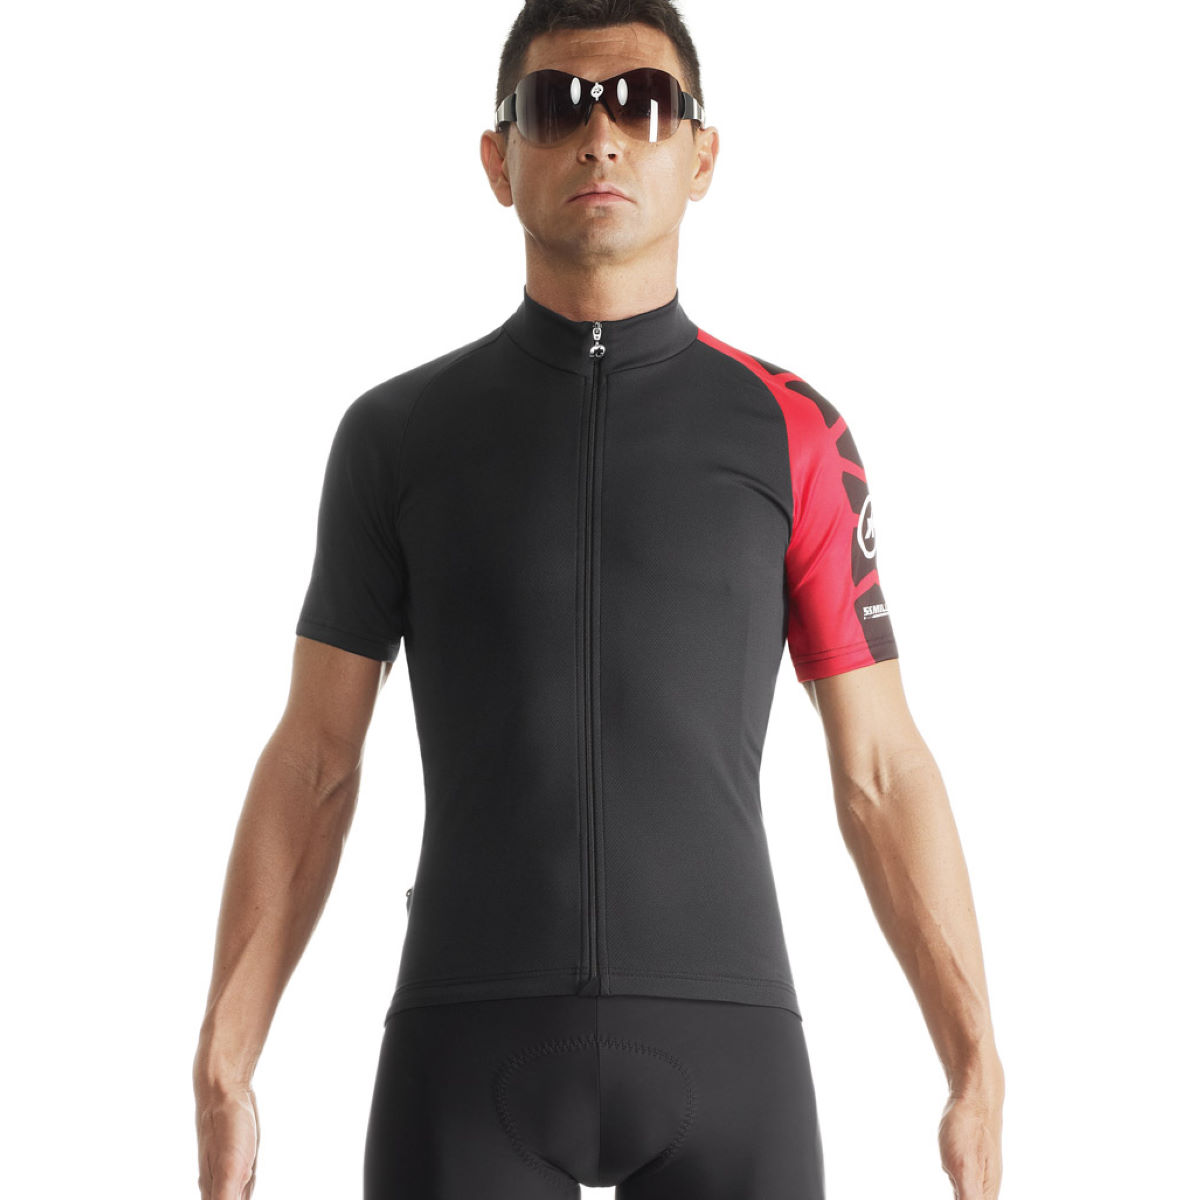 Maillot Assos SS.mille_evo7 - XS National Red Maillots